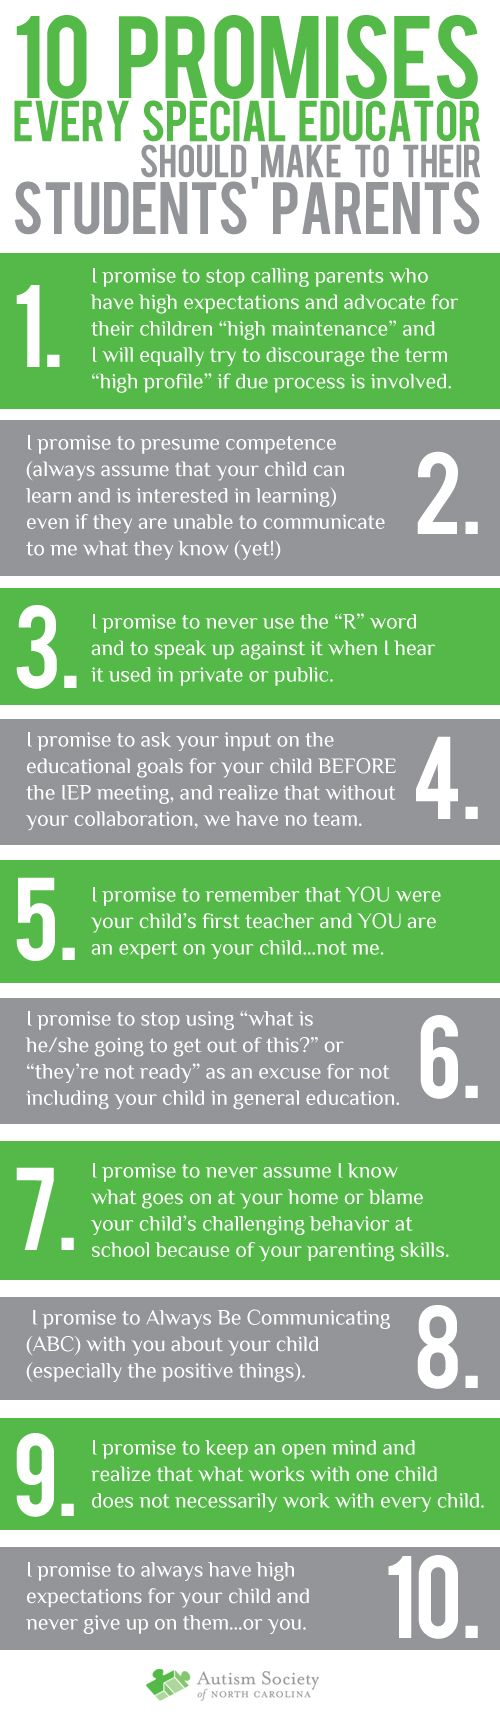 10 promises every special educator should make to student's parents.......so true!